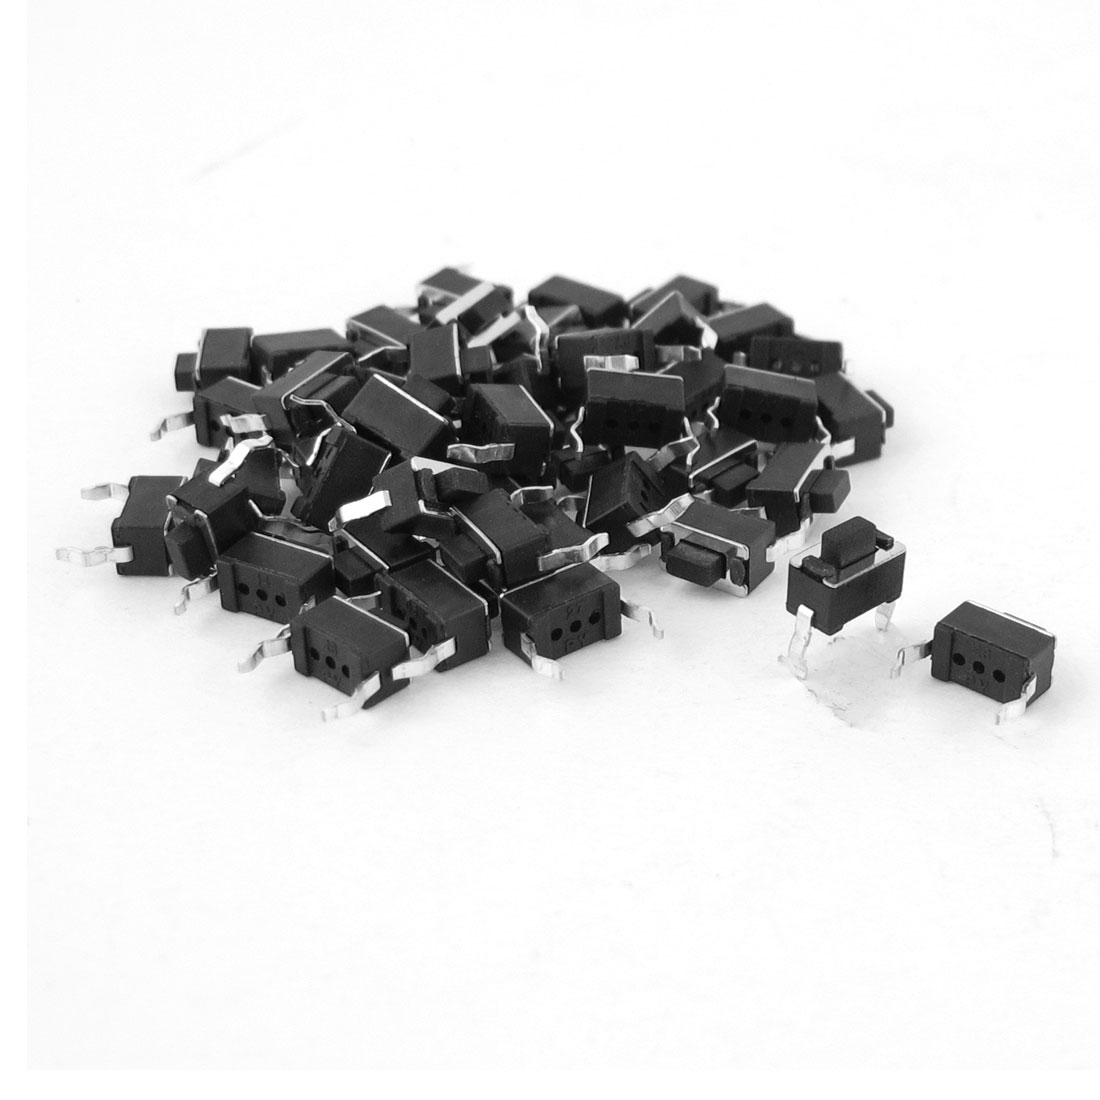 47pcs 3x6x5mm DIP Through Hole Momentary Tact Tactile Push Button Switch